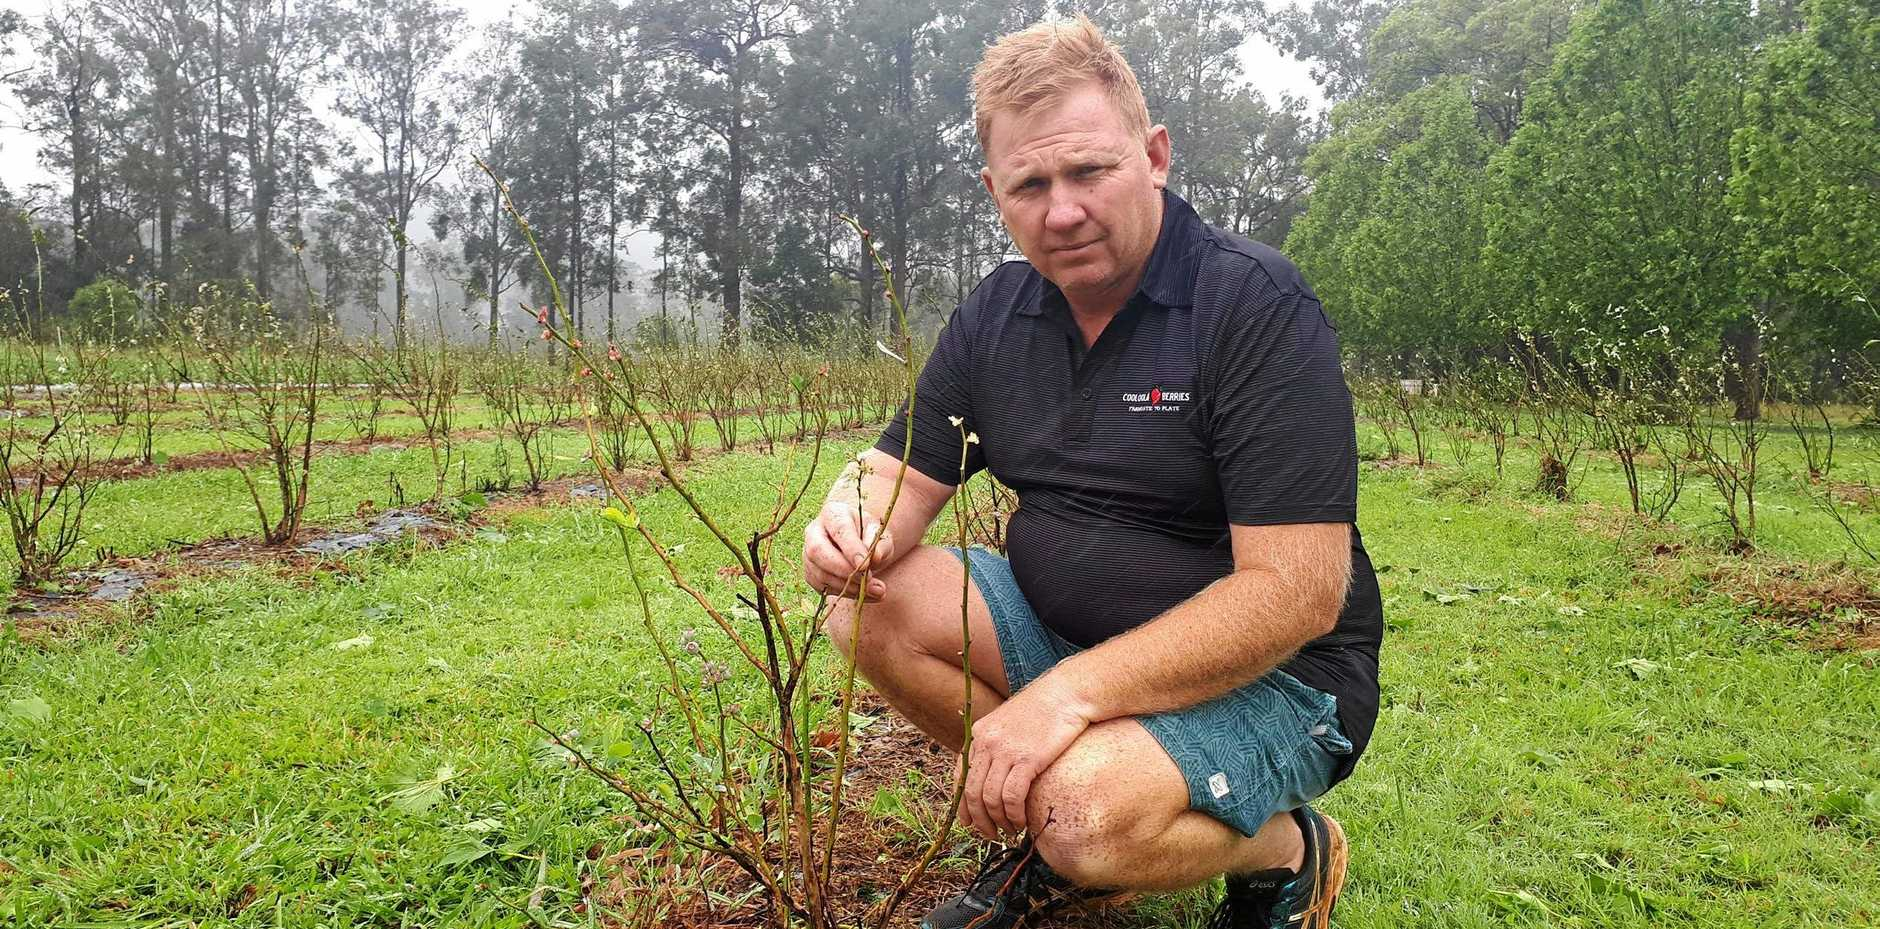 REGROWTH: Cooloola Berries owner Jason (pictured) and Kim Lewis say they are unlikely to be eligible for available disaster support after last October's hail storm devastated their crops, but are confident of the community's support.